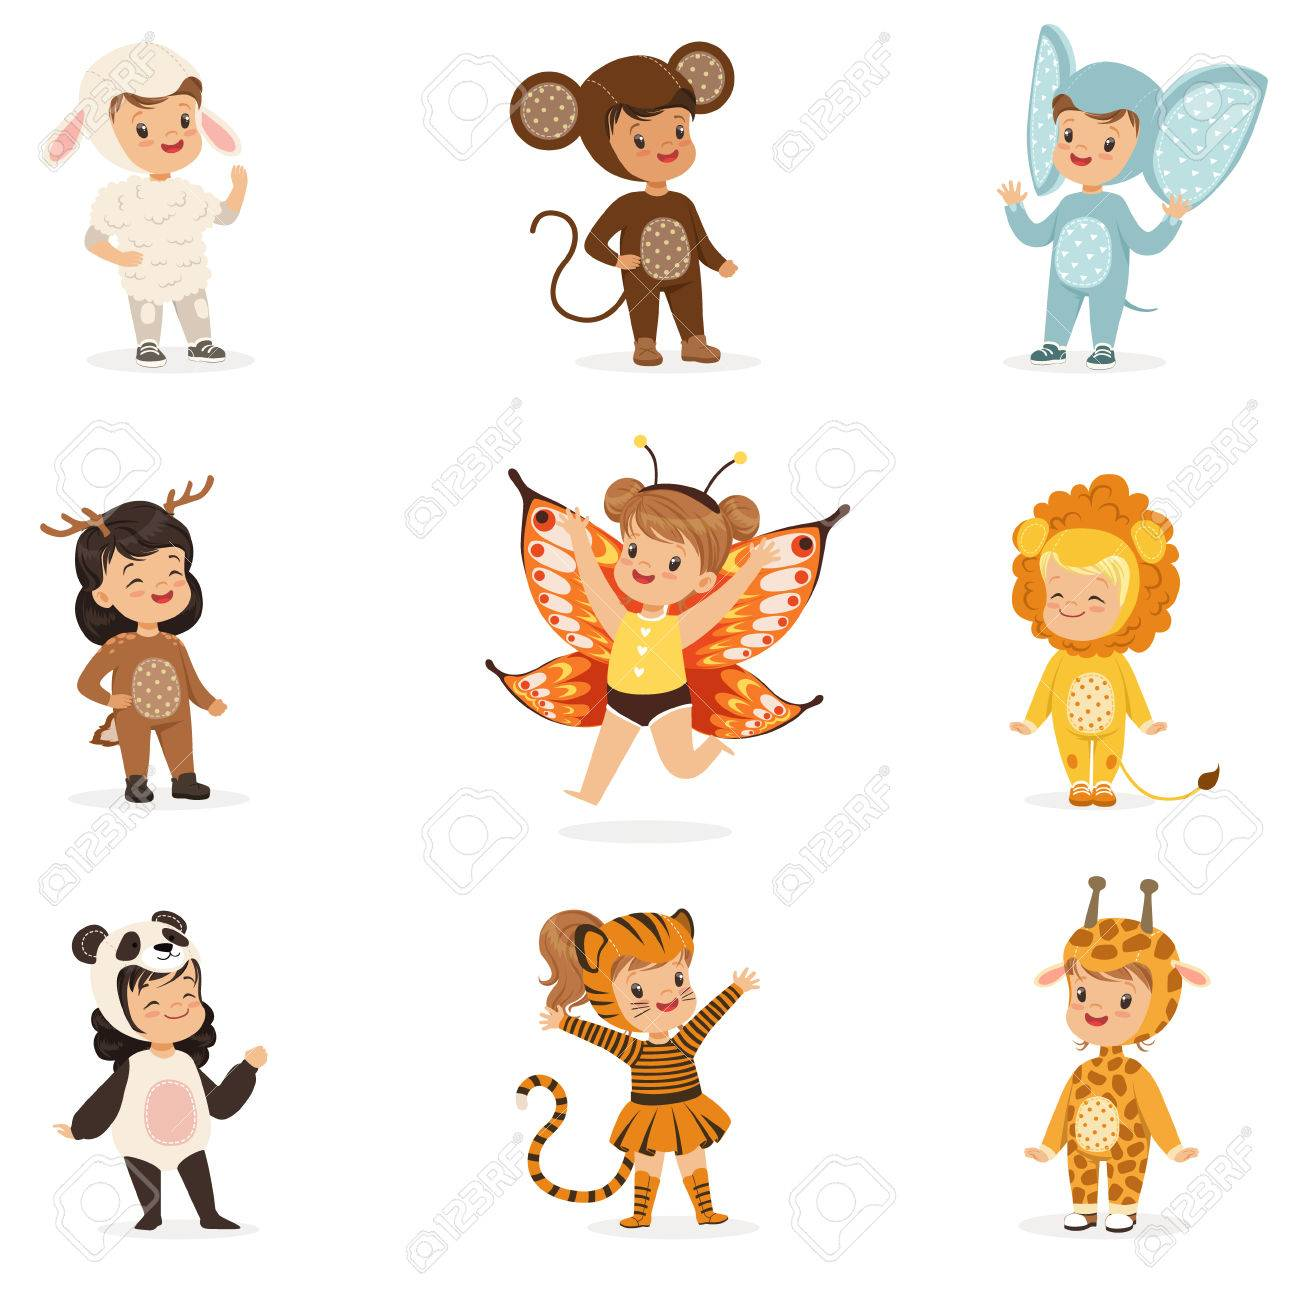 Kinds In Animal Costume Disguise Happy And Ready For Halloween Masquerade Party Collection Of Cute Disguised Infants - 74439656